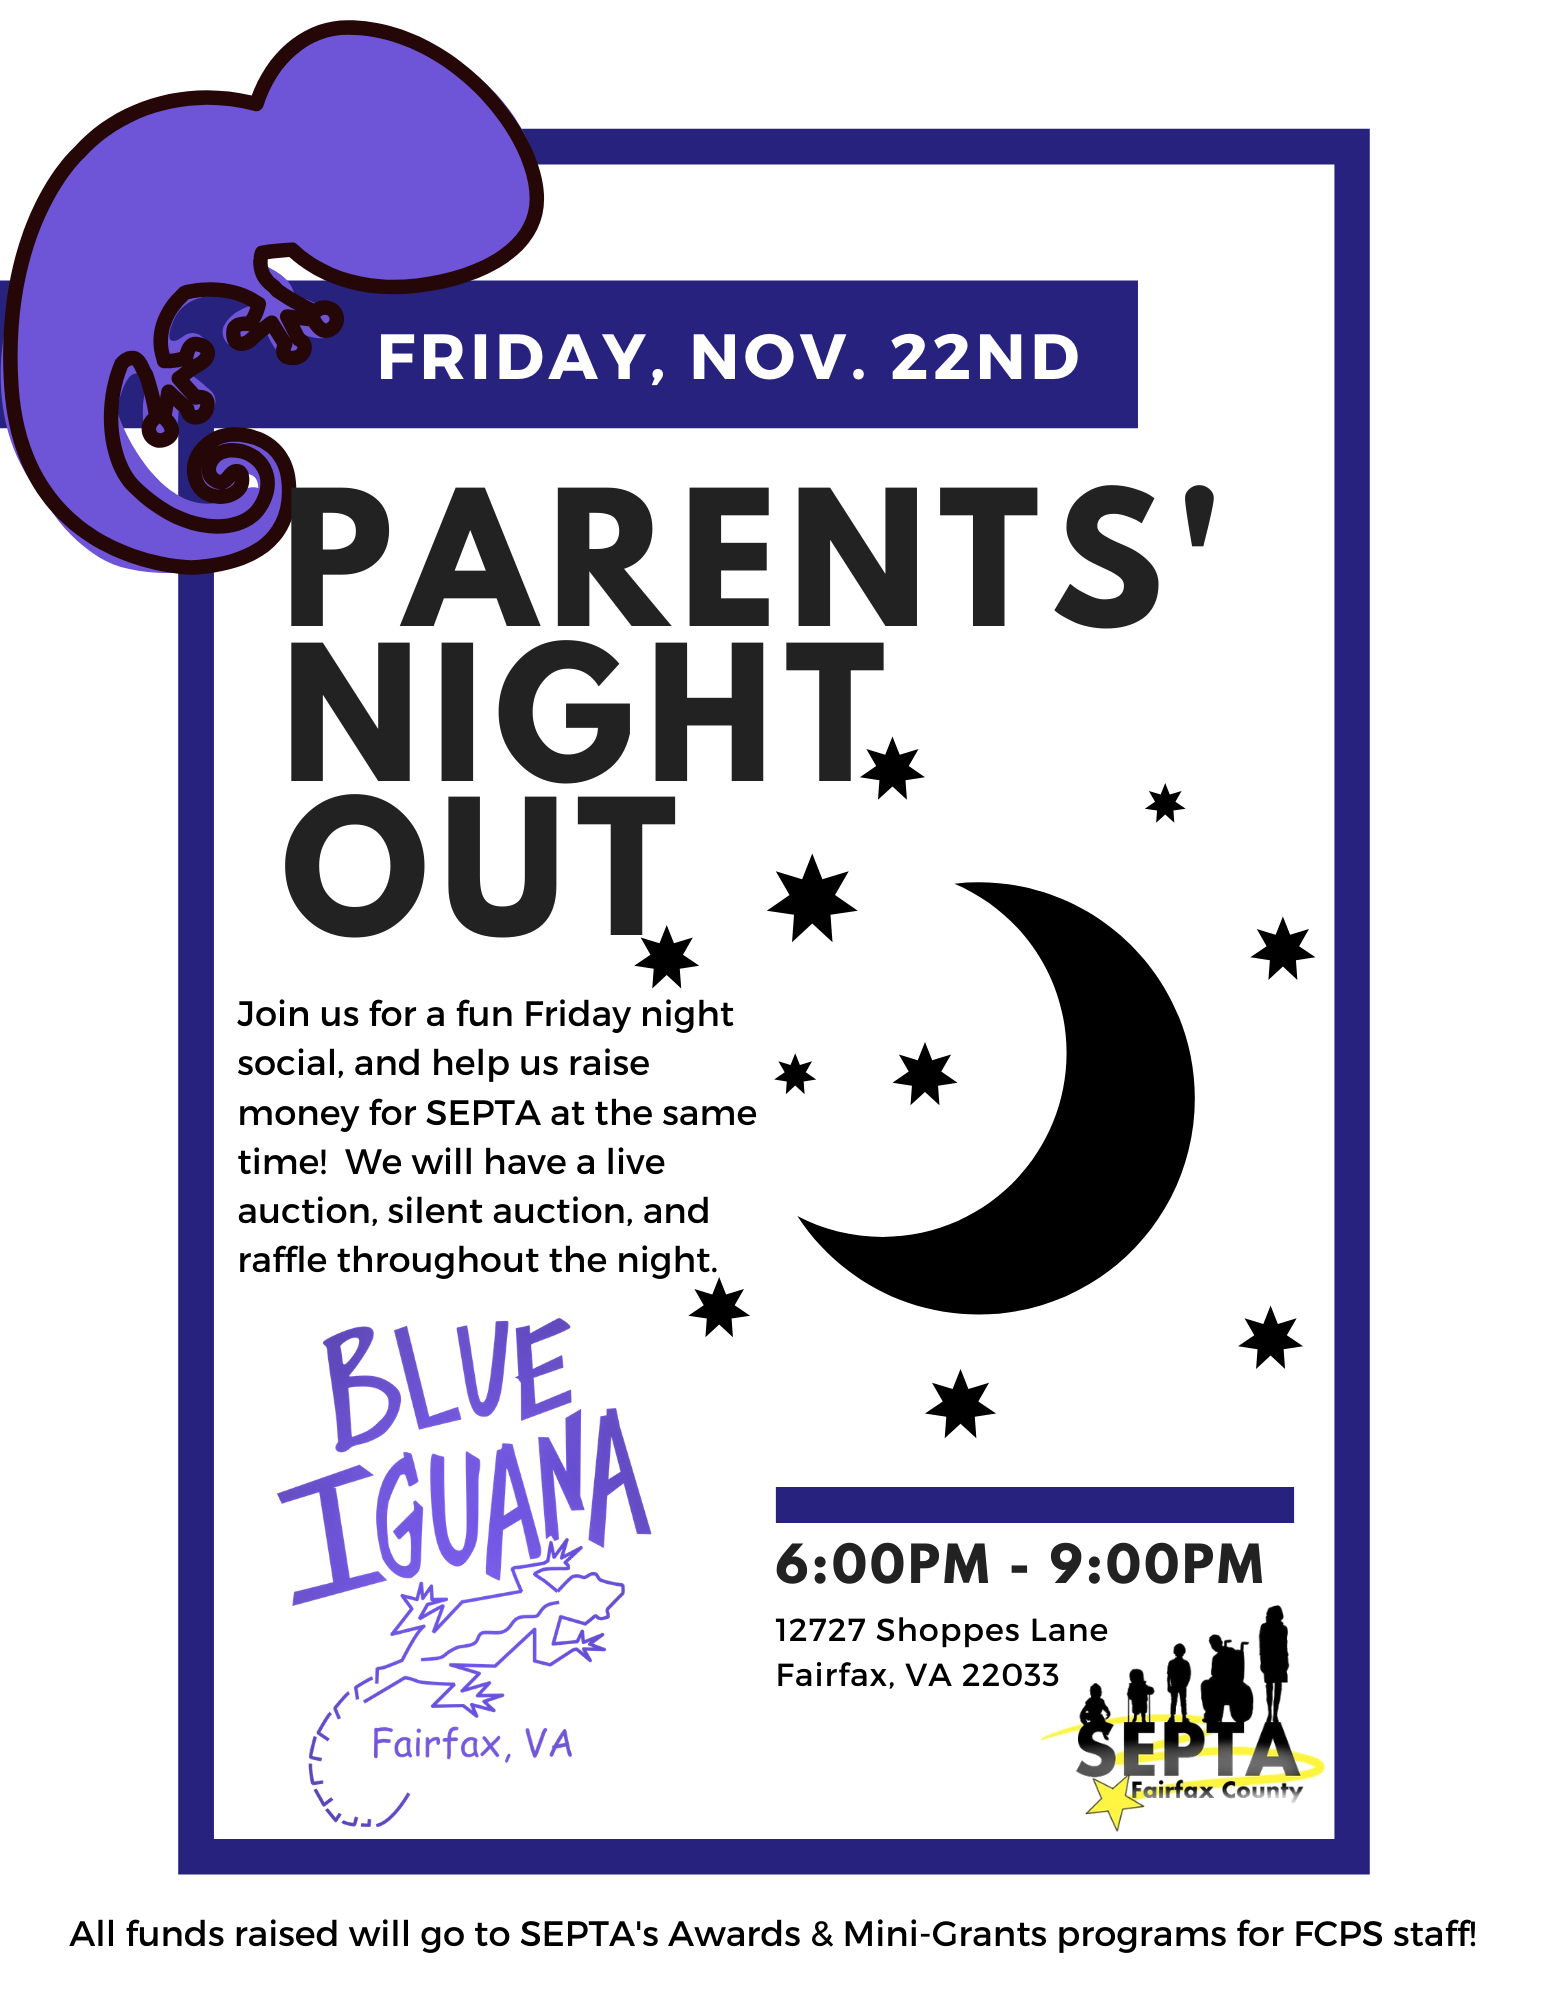 Parent's Night Out at the Blue Iguana - Friday November 22 from 6PM to 9PM